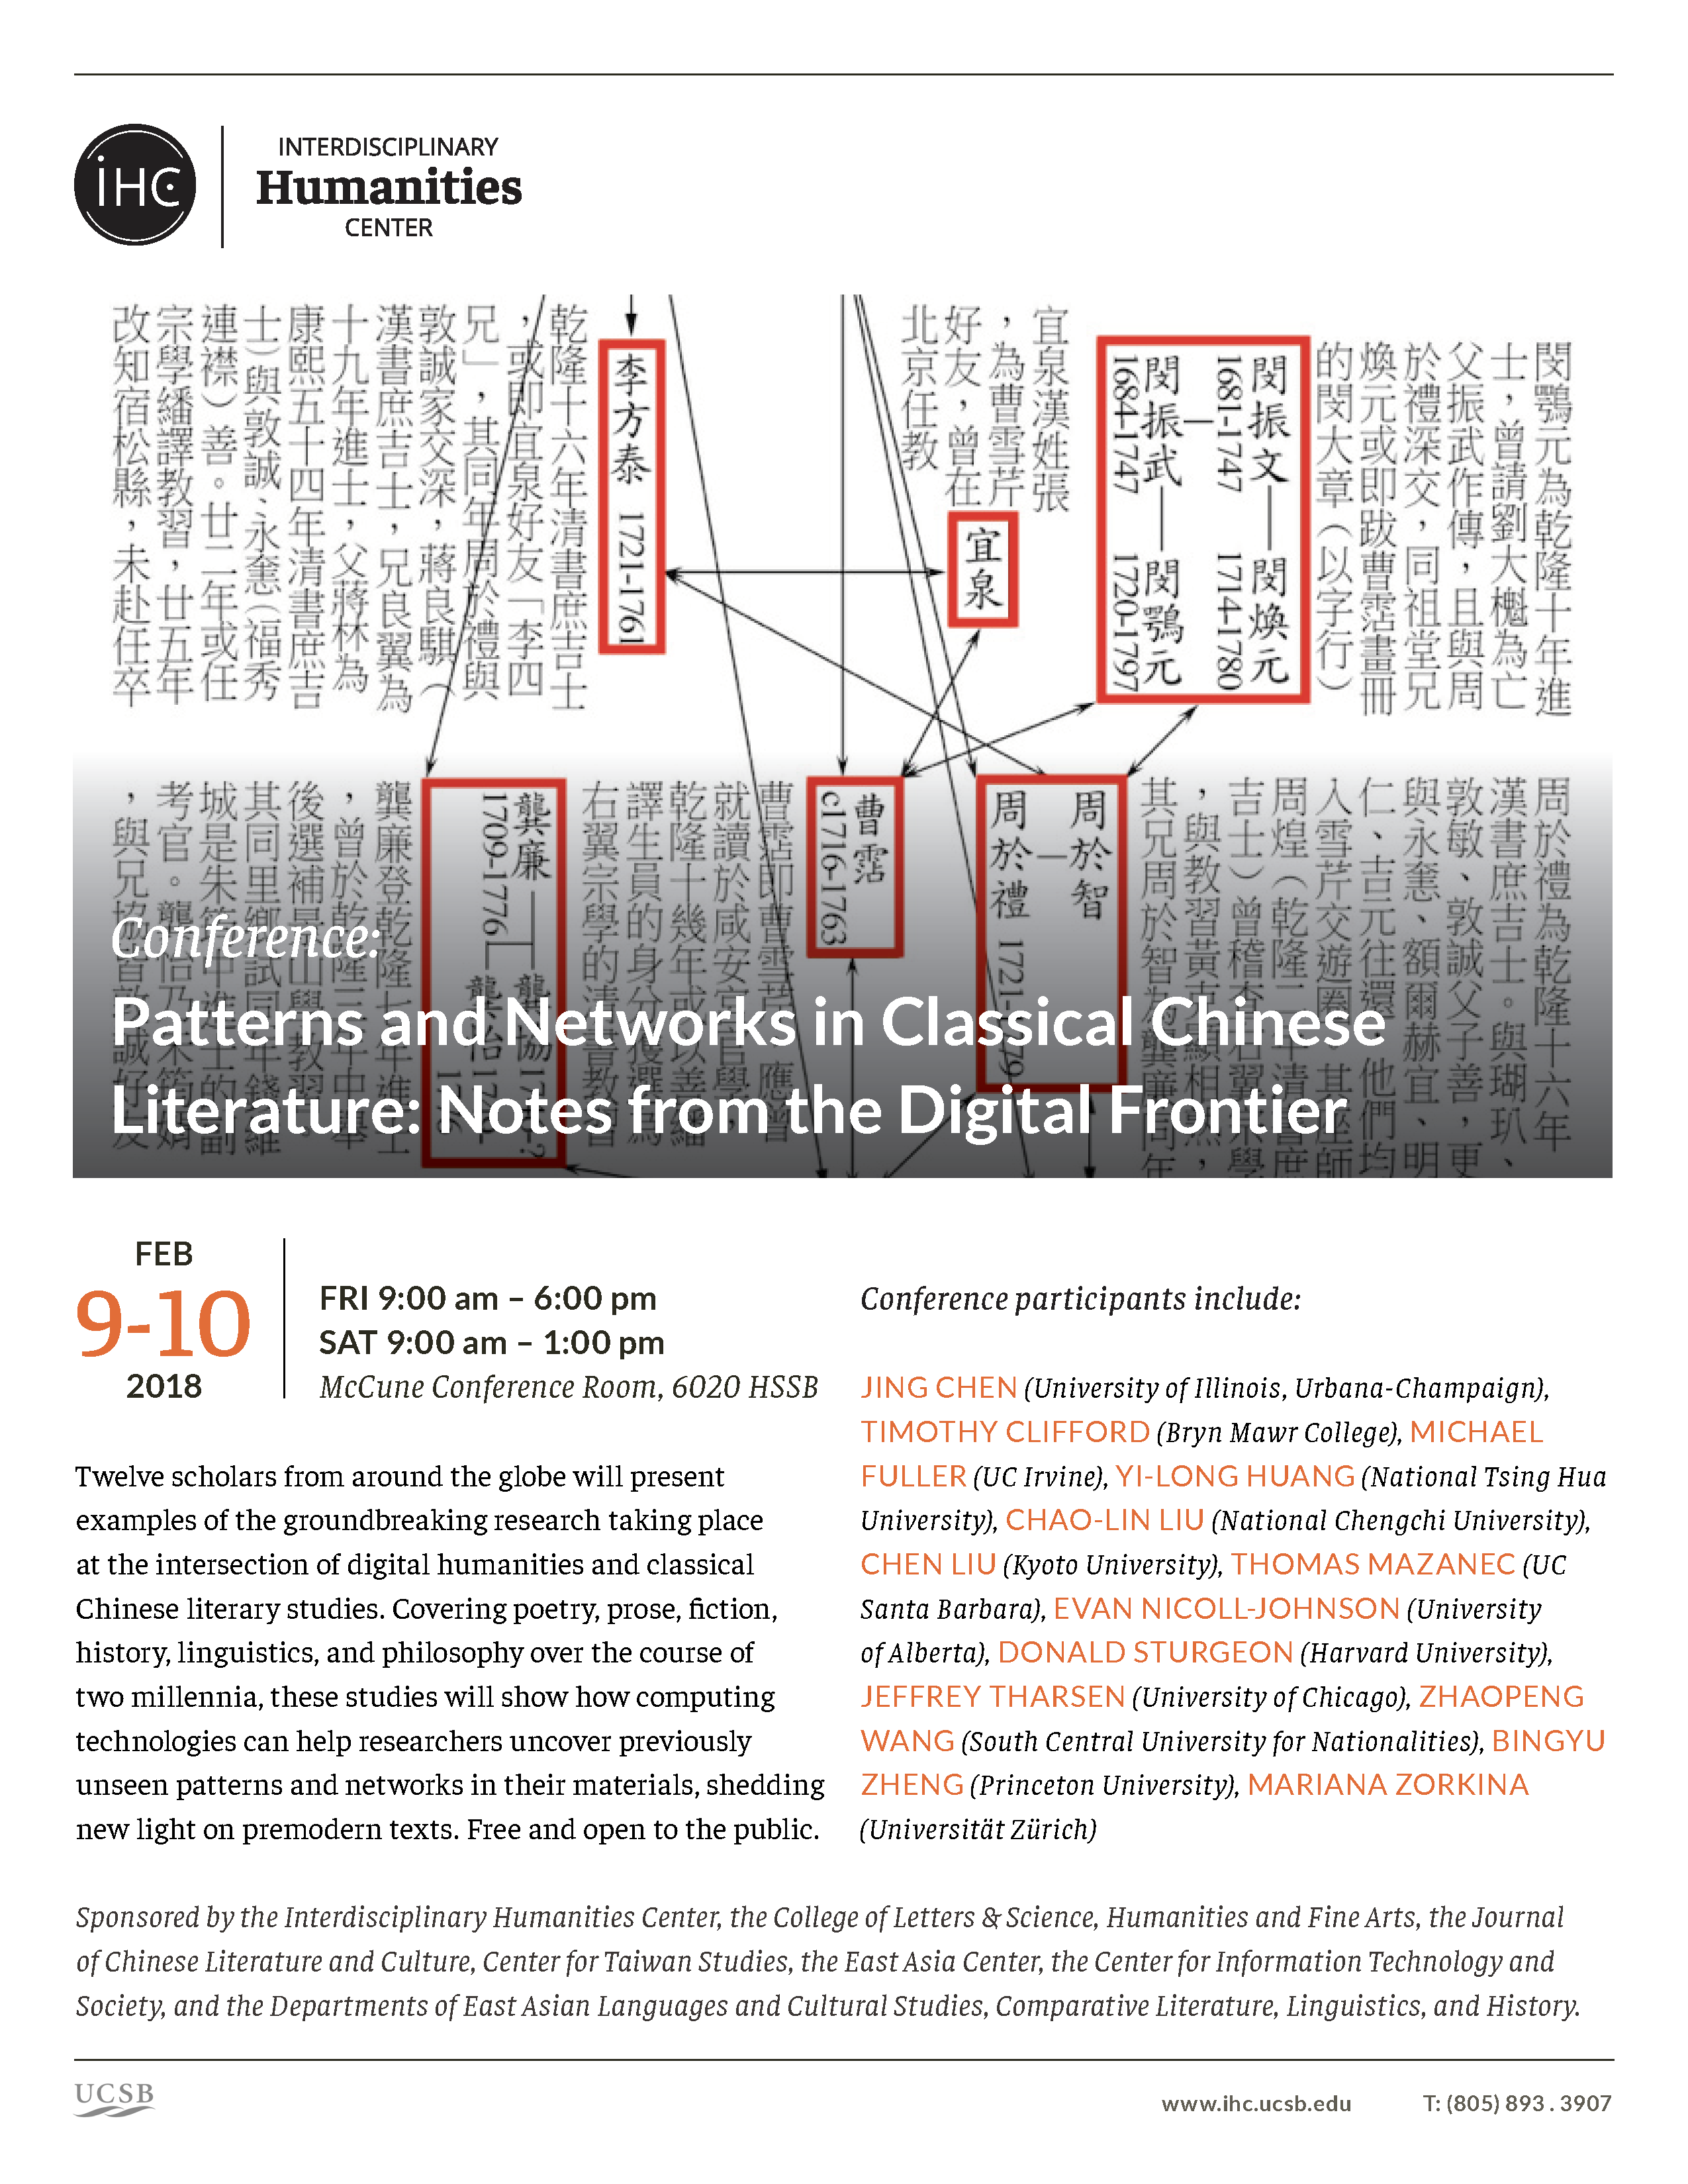 Patterns and Networks in Classical Chinese Literature: Notes from the Digital Frontier